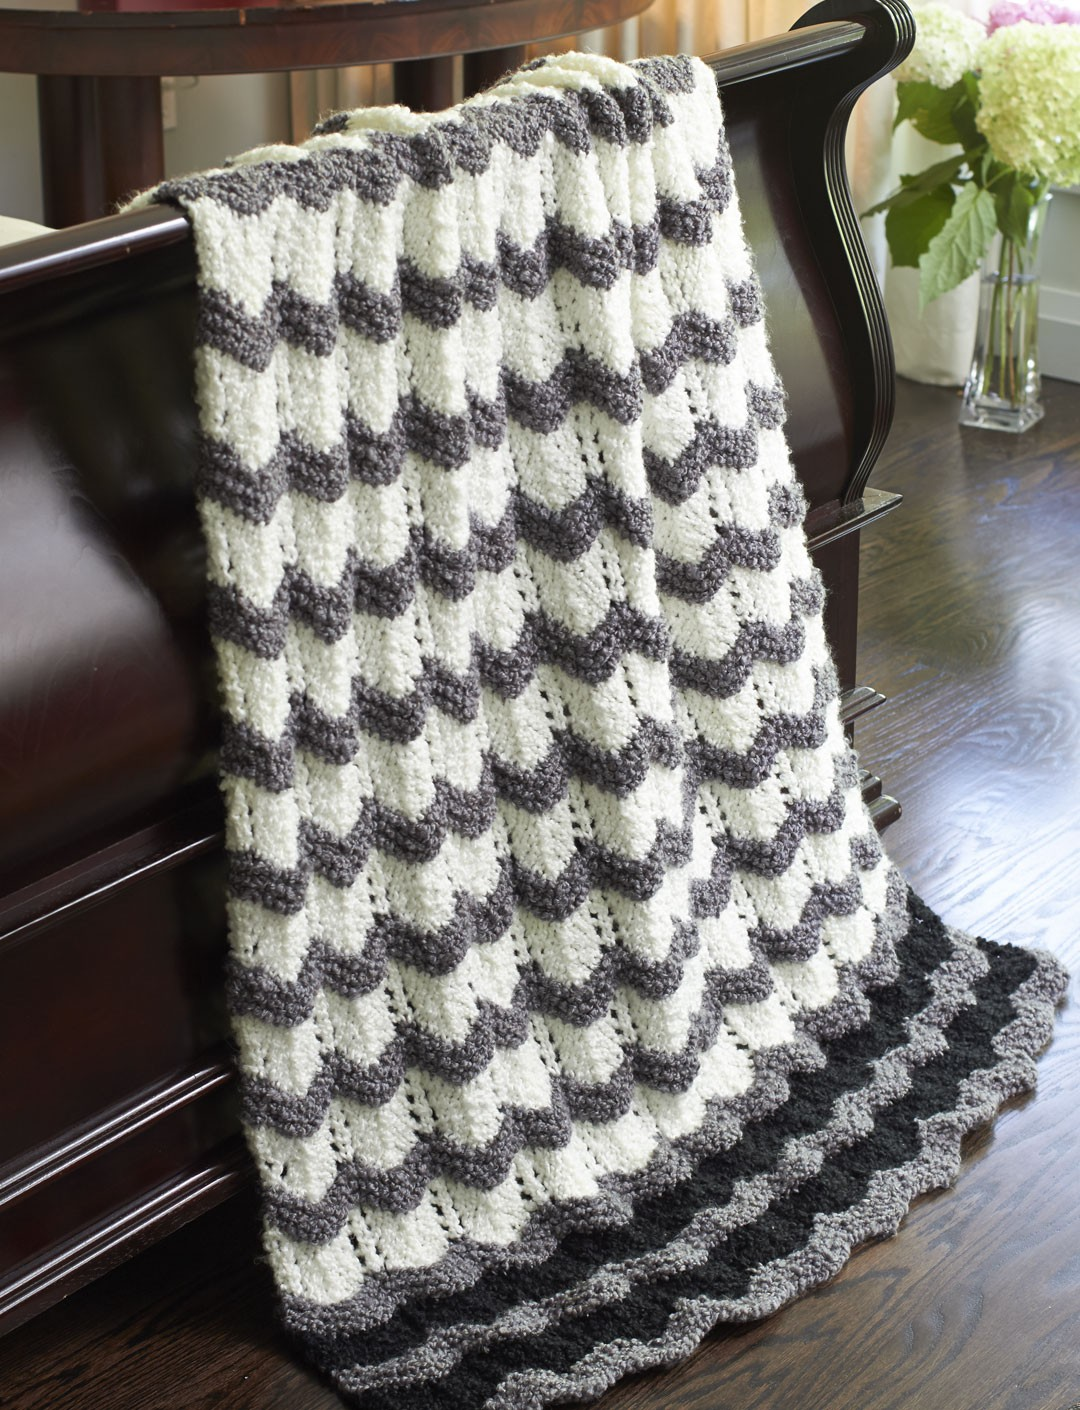 Knitting Pattern For Ripple Afghan : Bernat Stones Throw Ripple, Knit Pattern Yarnspirations